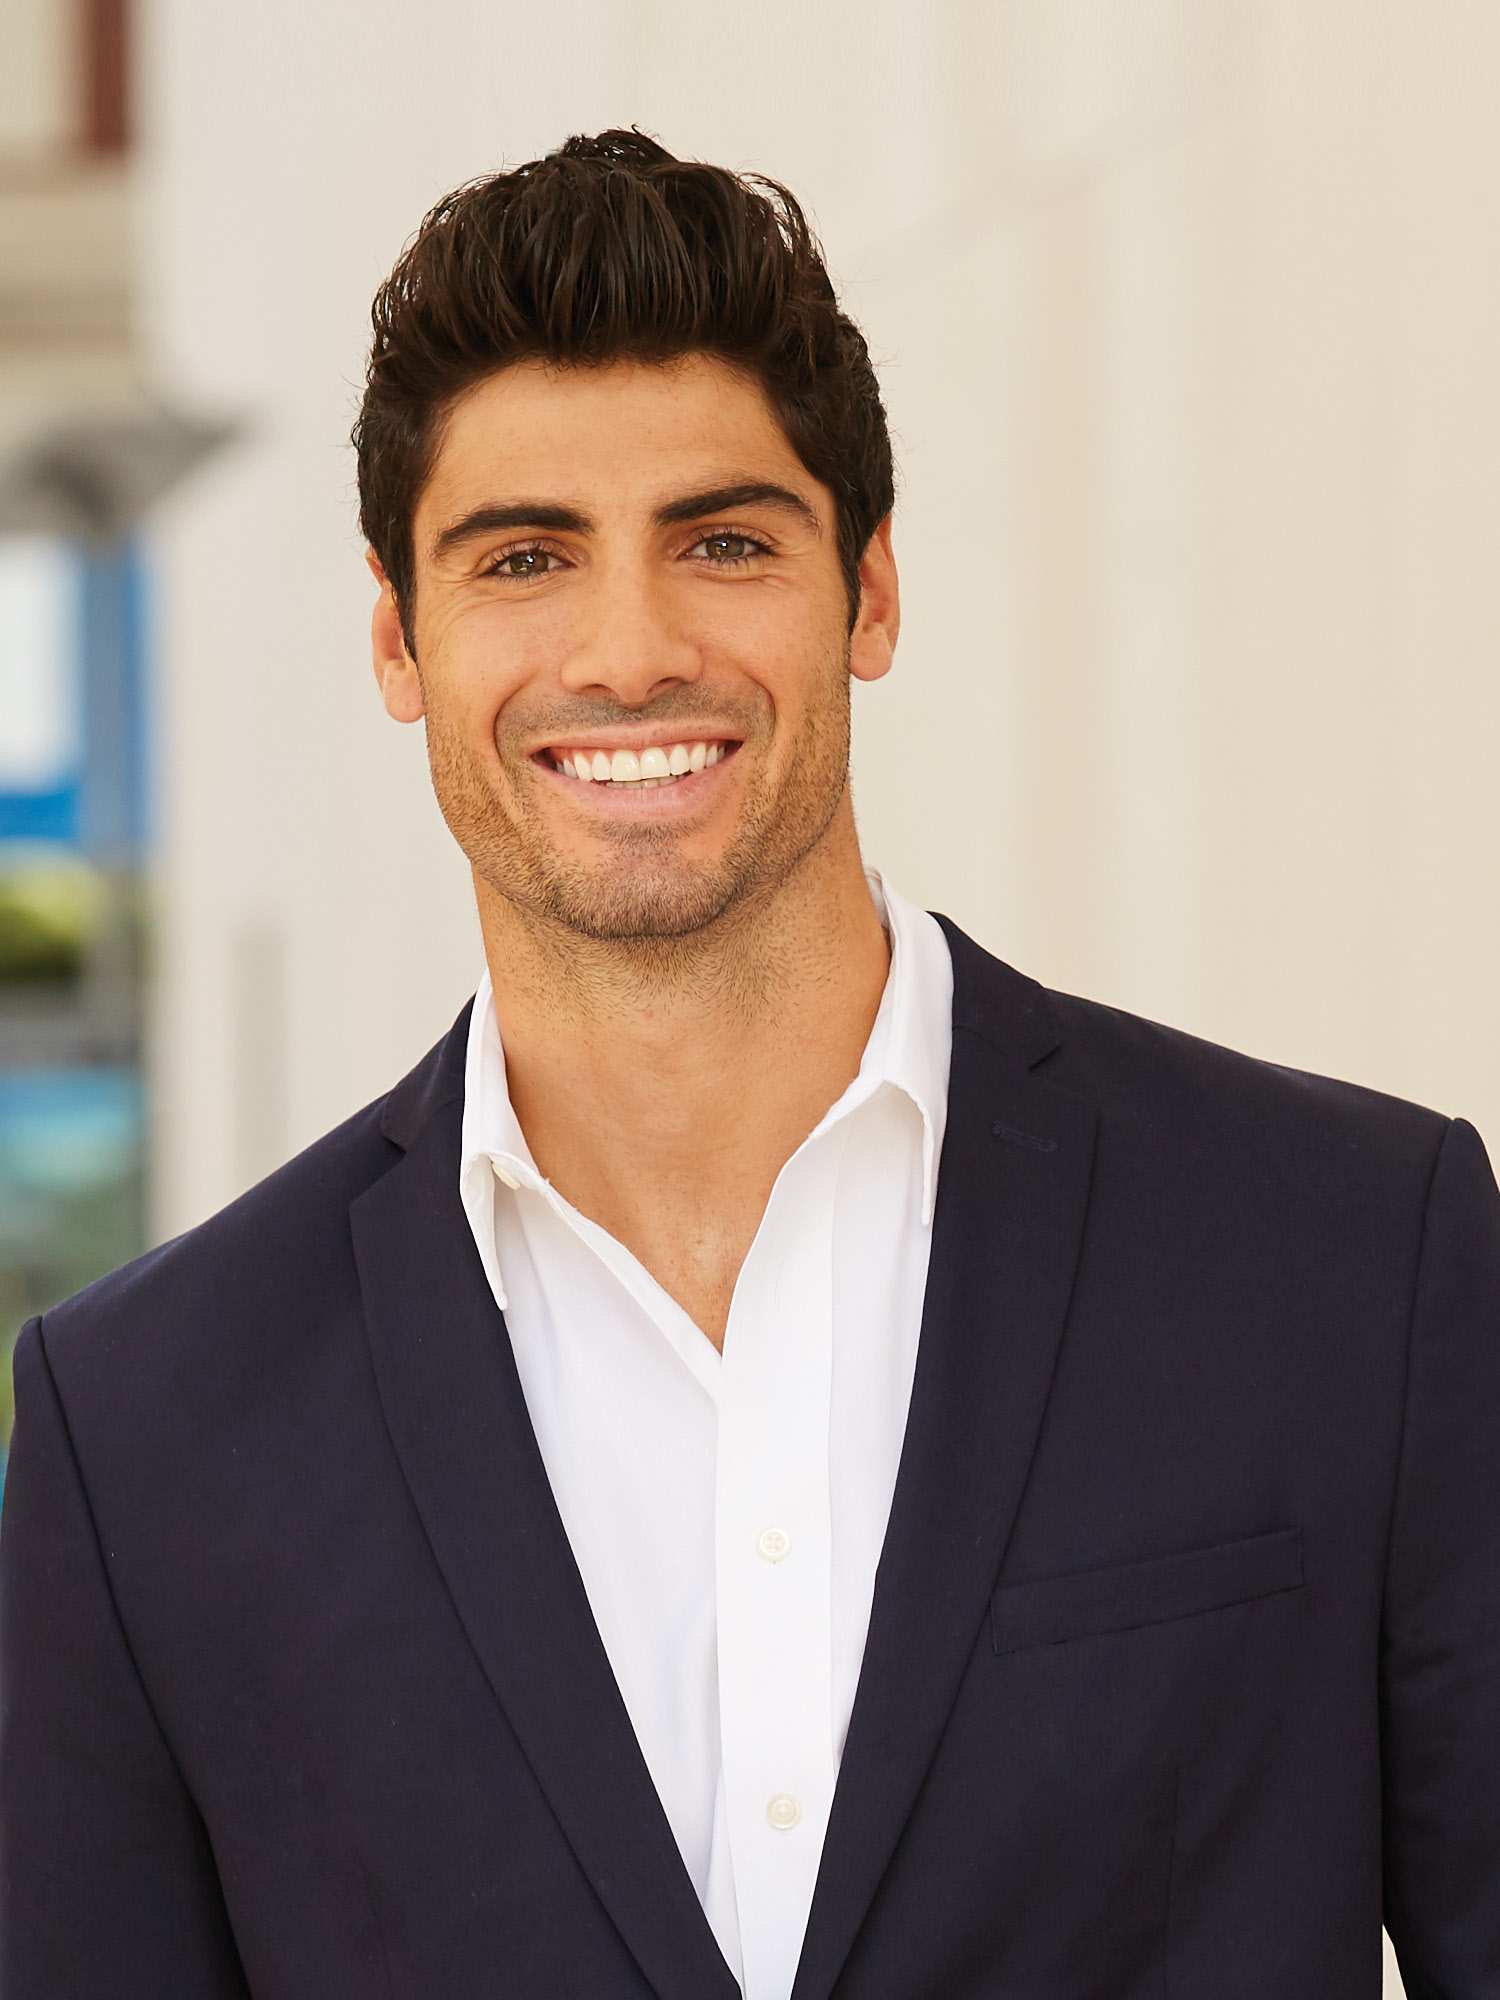 Brandon Goss, a top realtor in New York City for Corcoran, a real estate firm in Chelsea/Flatiron.